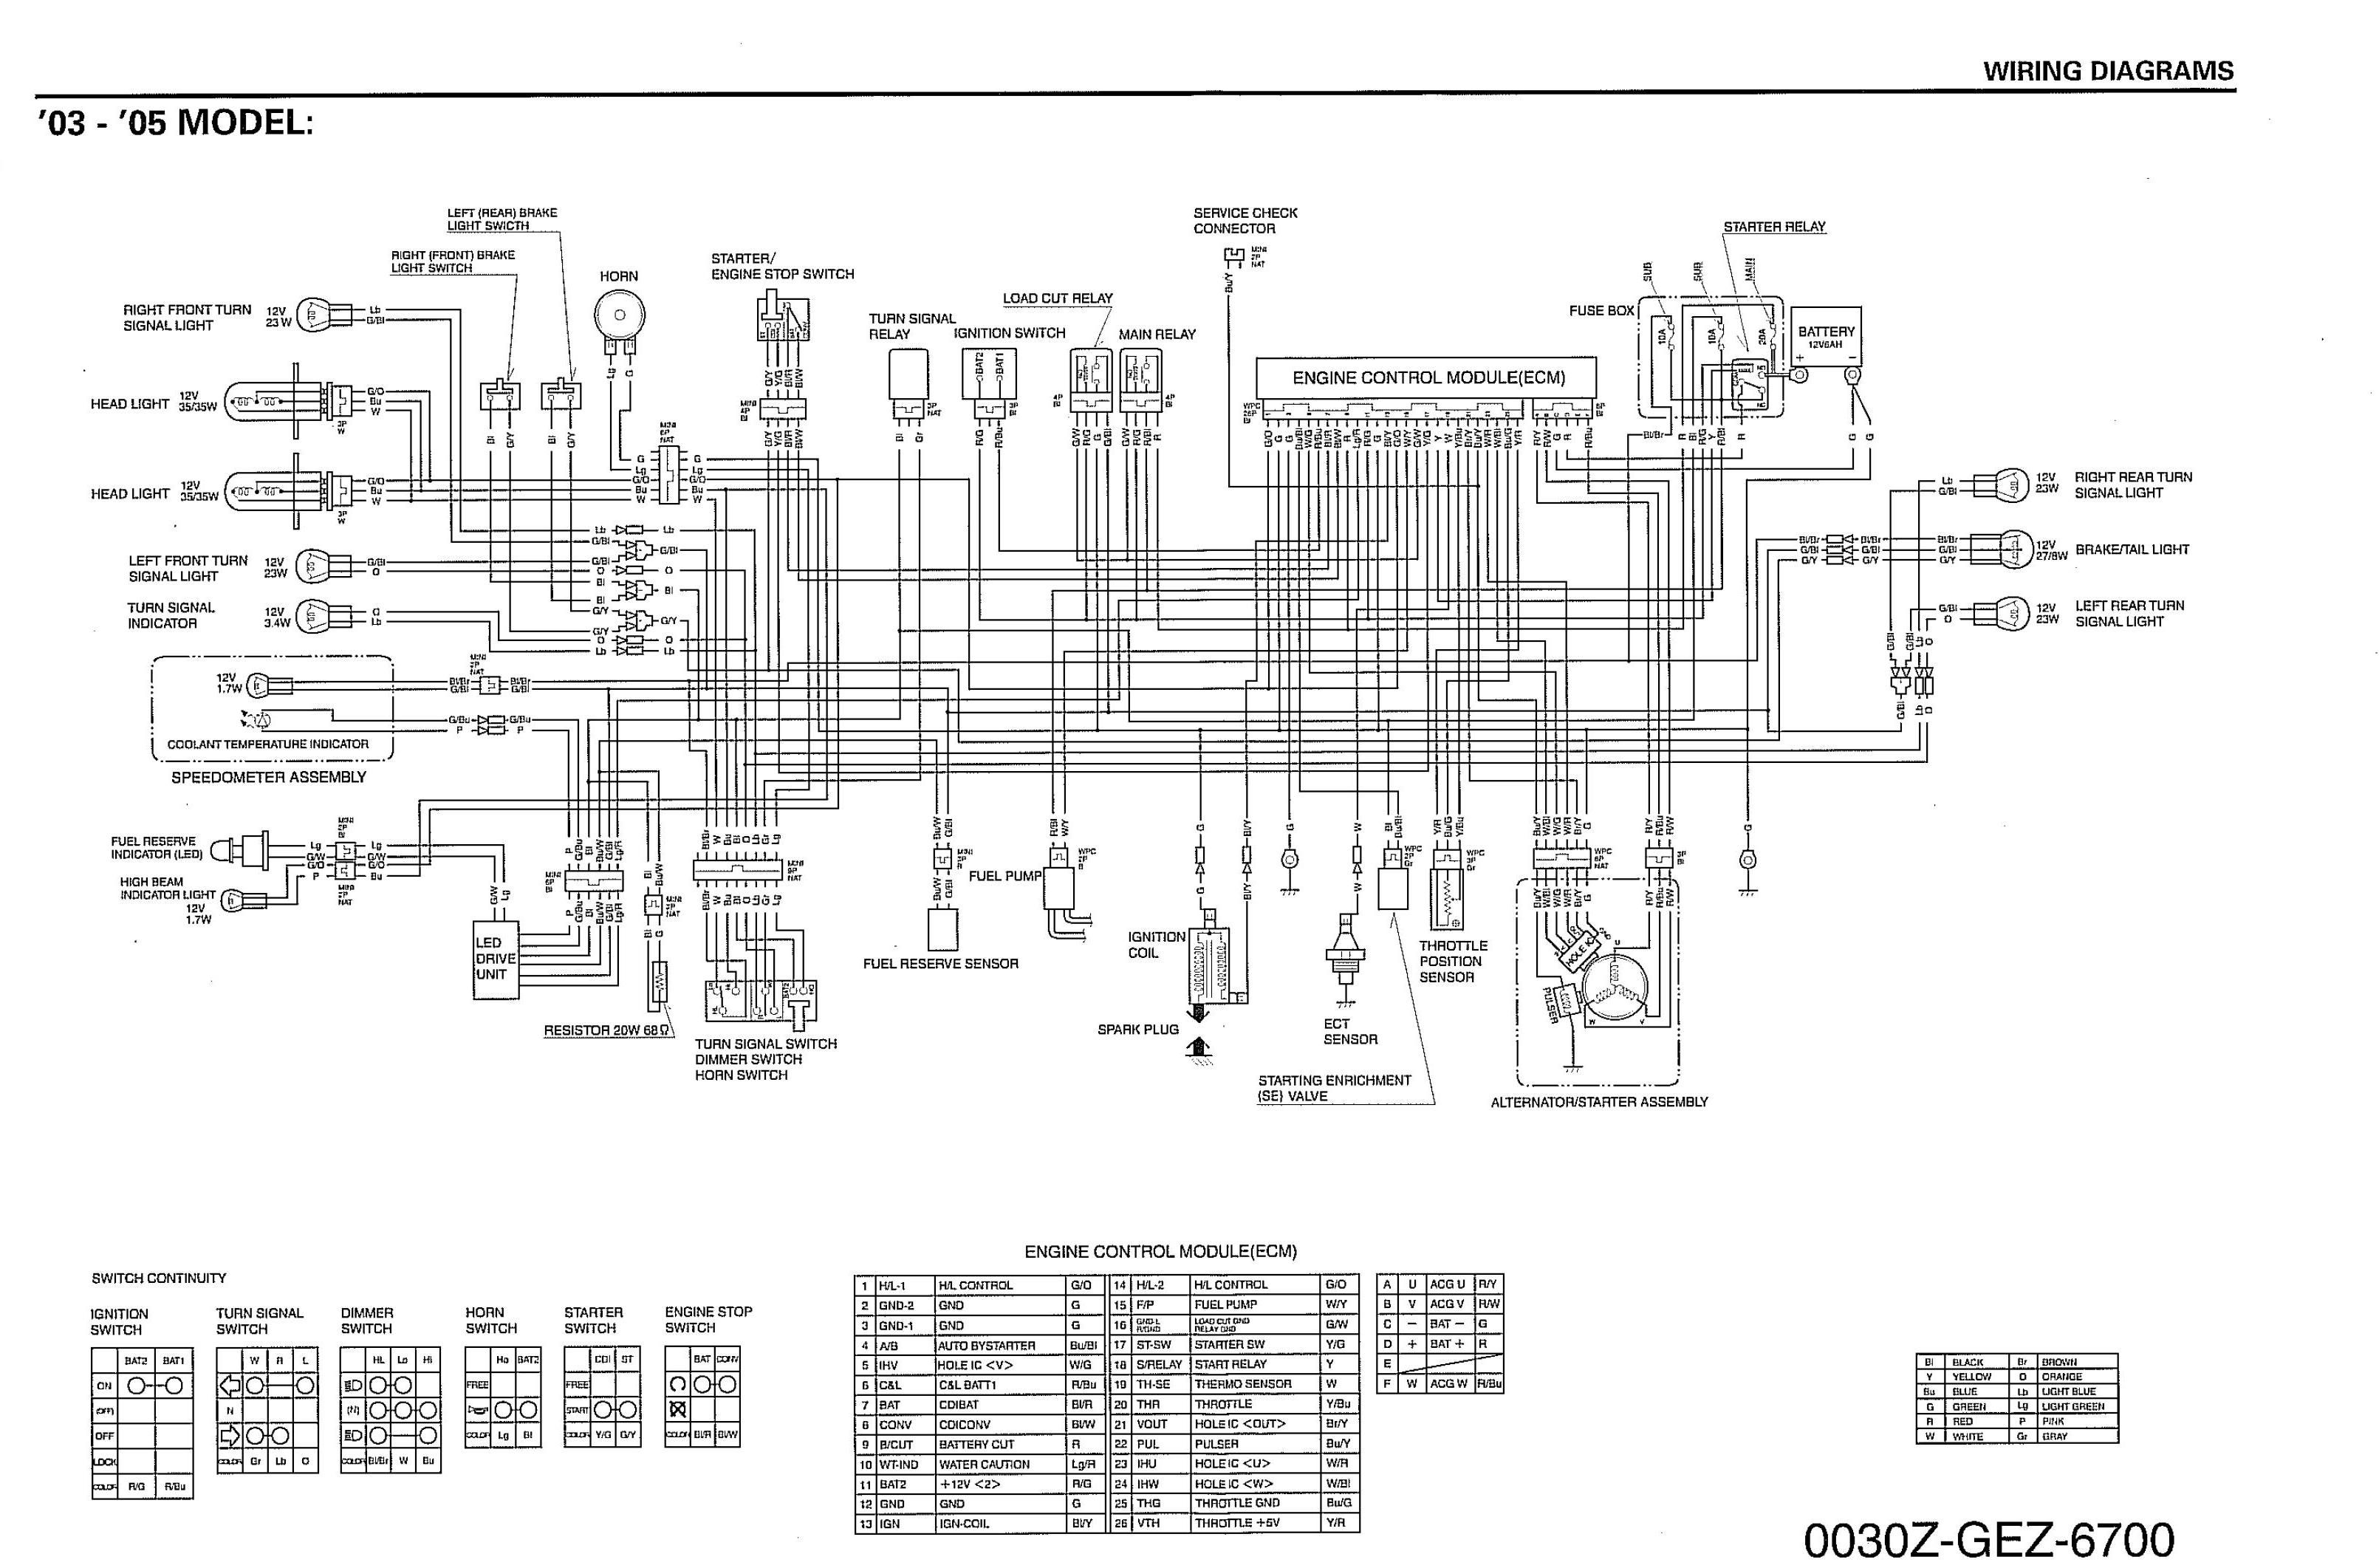 fuse box diagram for 2004 bmw x3